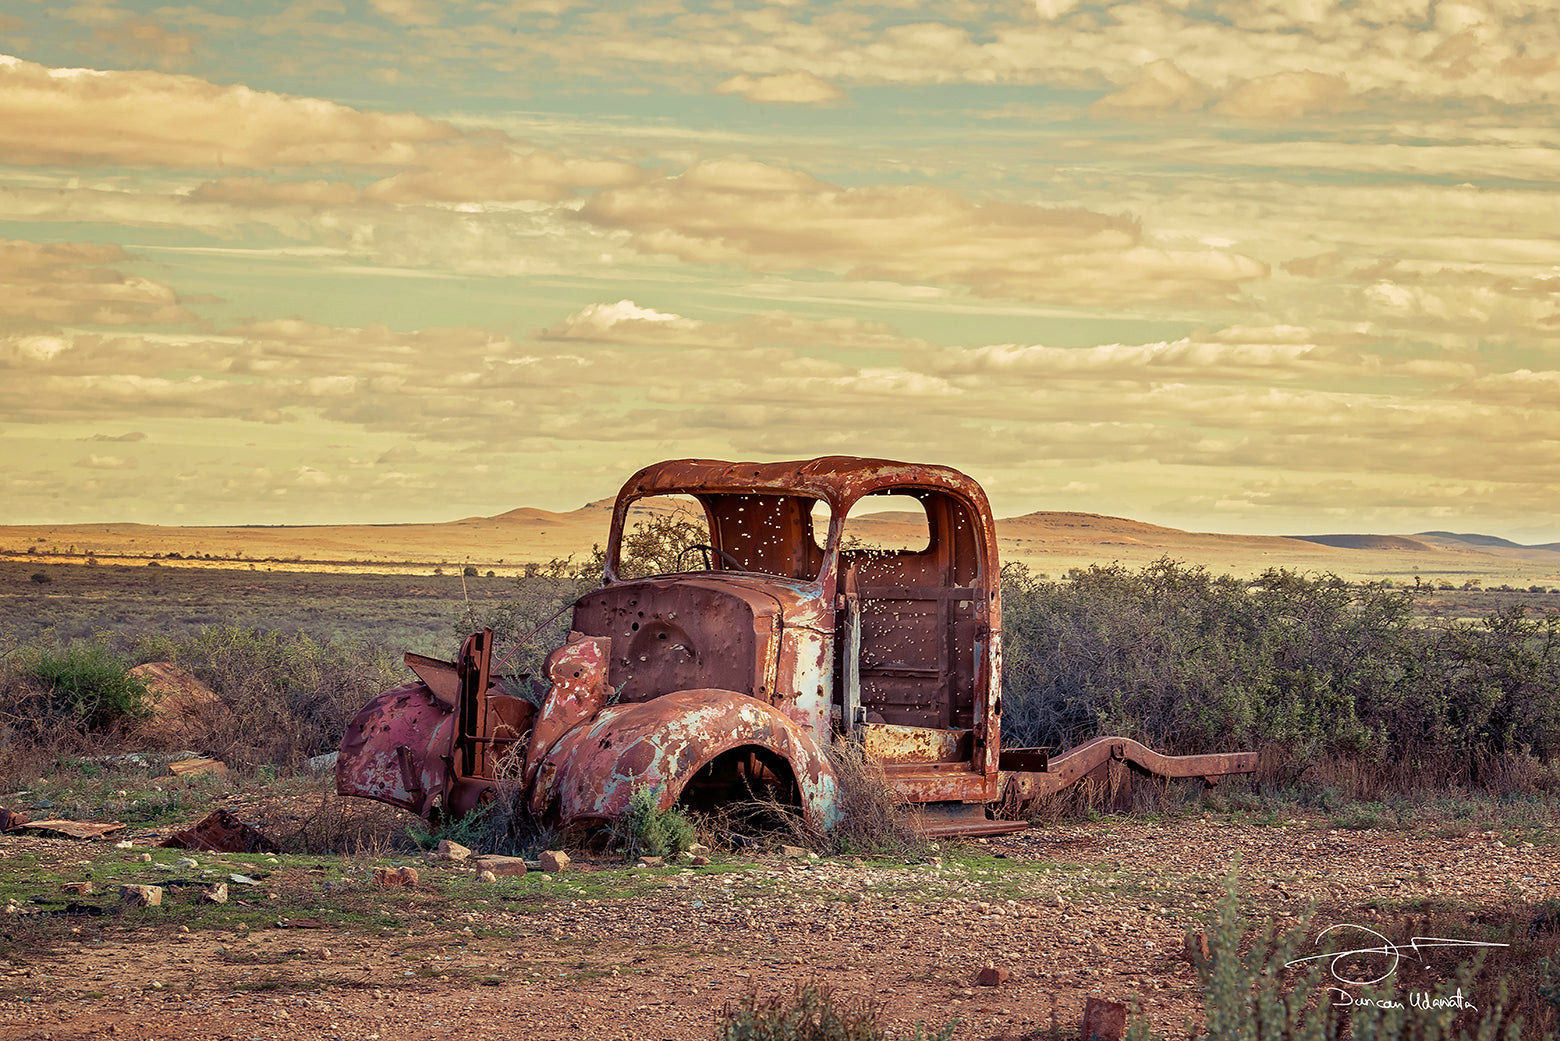 South Australia - Alone In The Outback